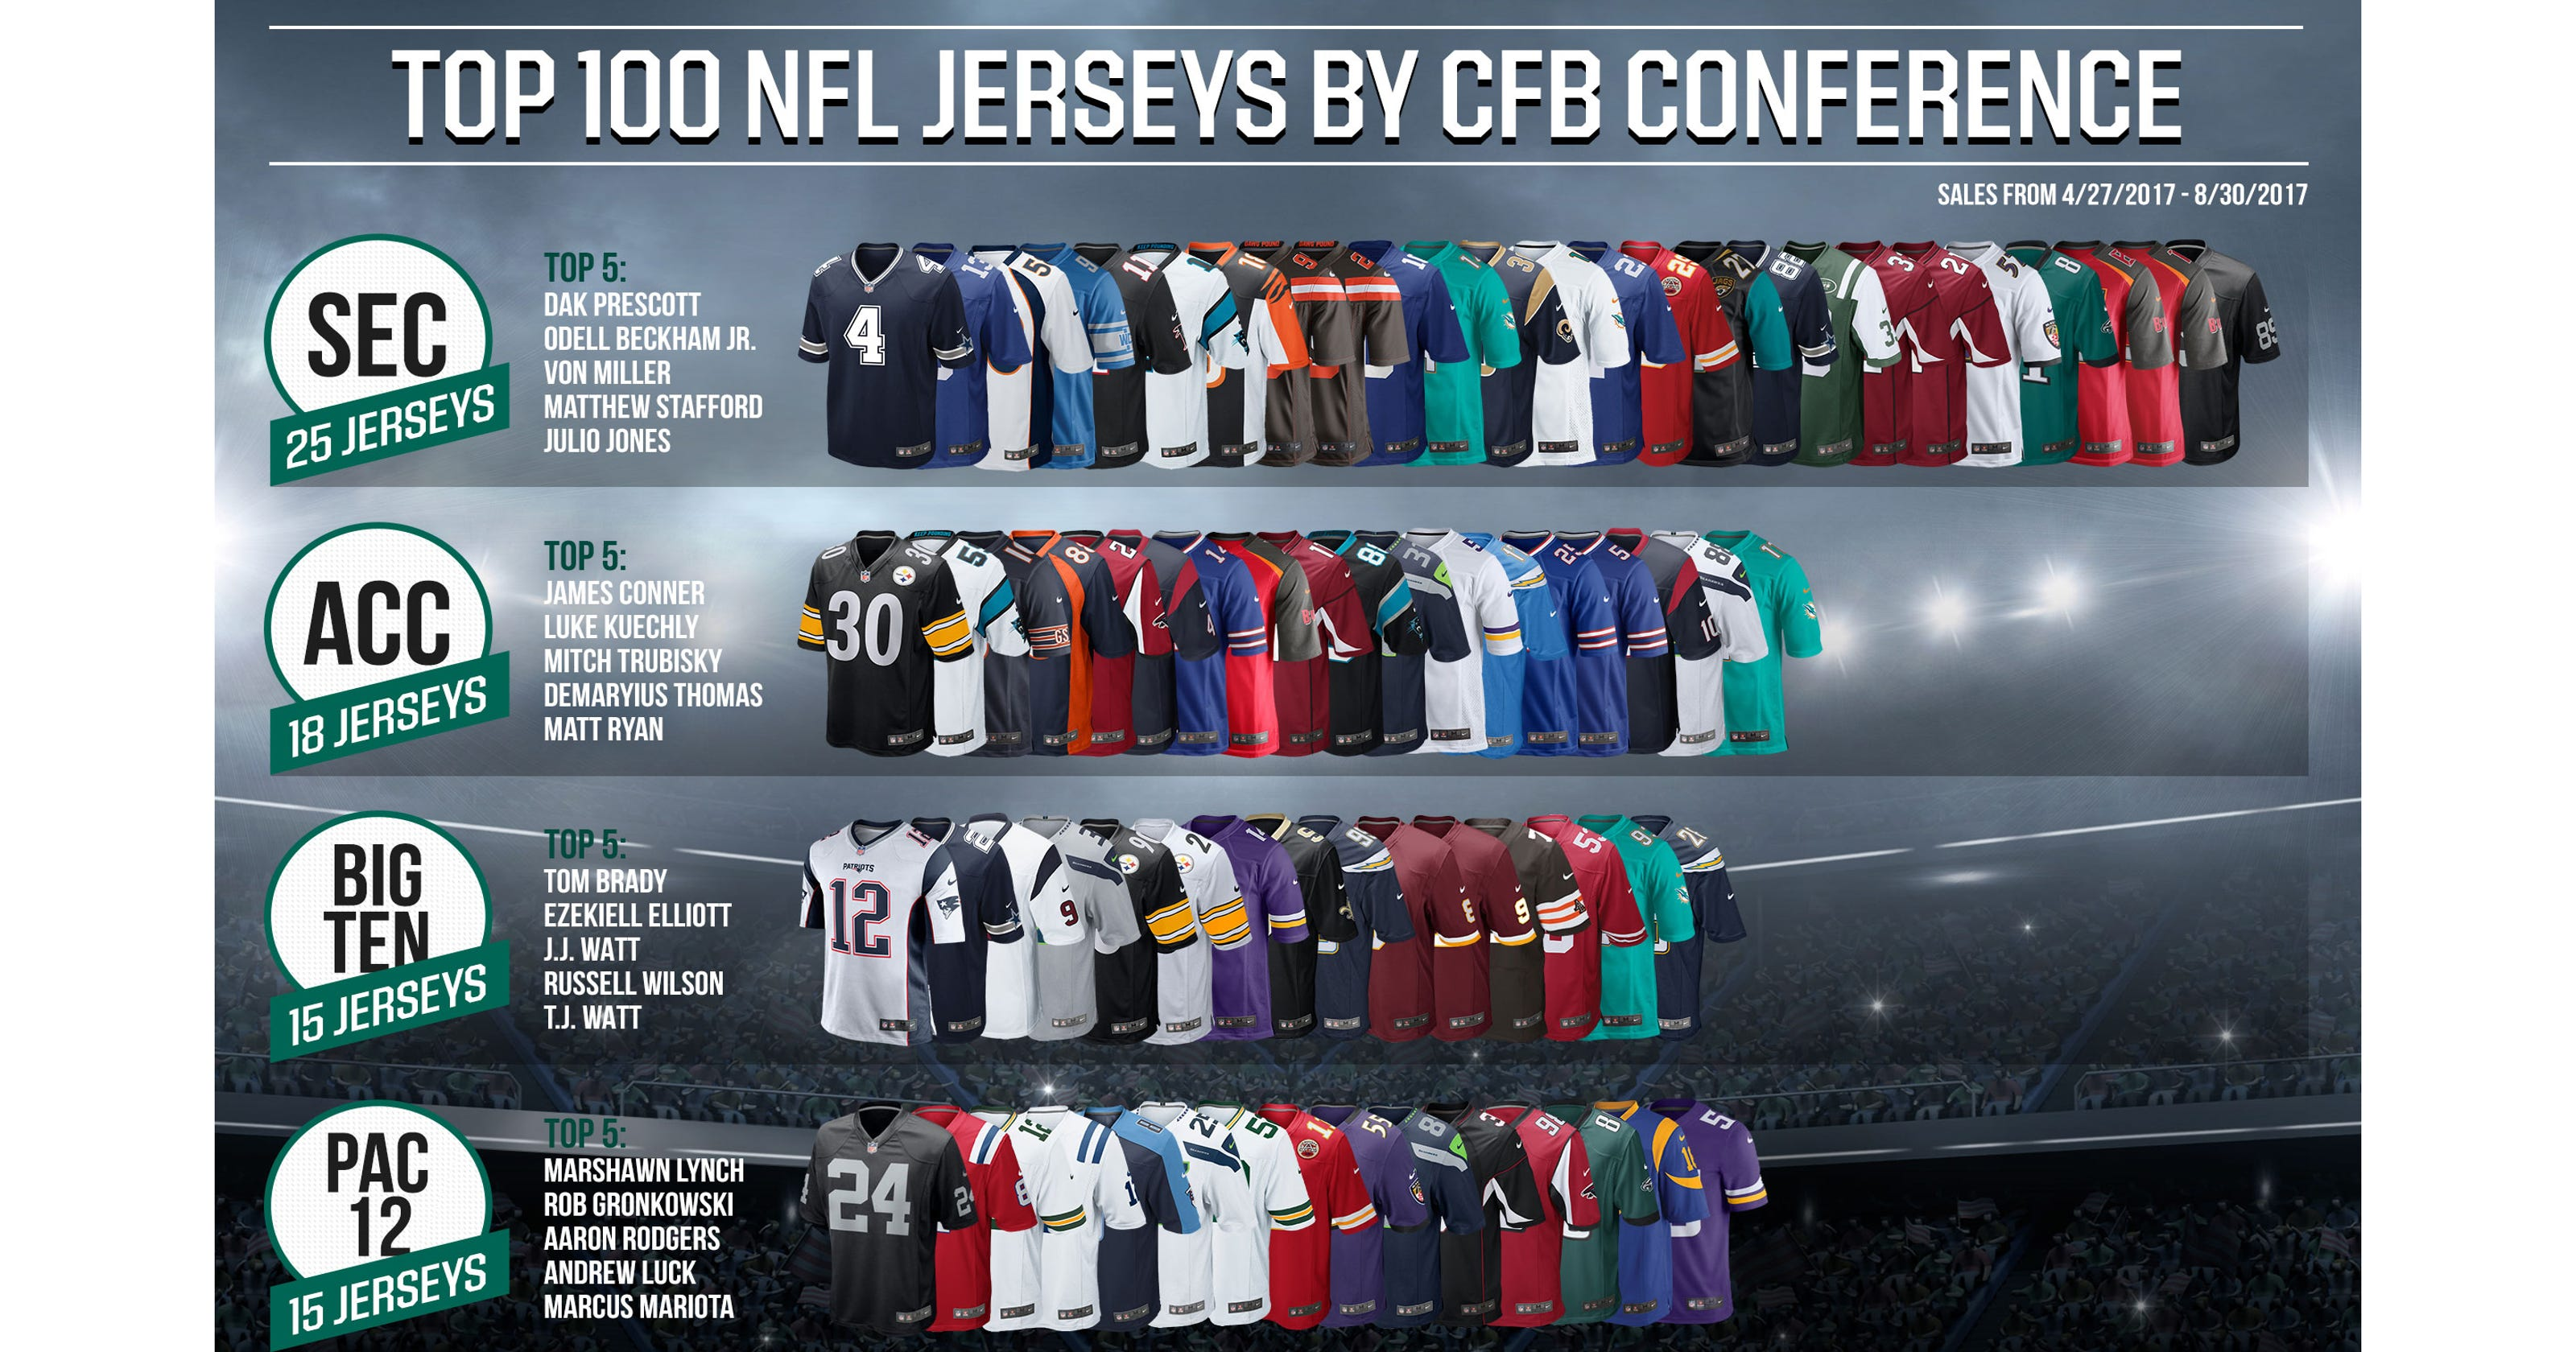 c5c6e640410 ACC ranks second in NFL jersey sales; 18 ACC players rank in top 100